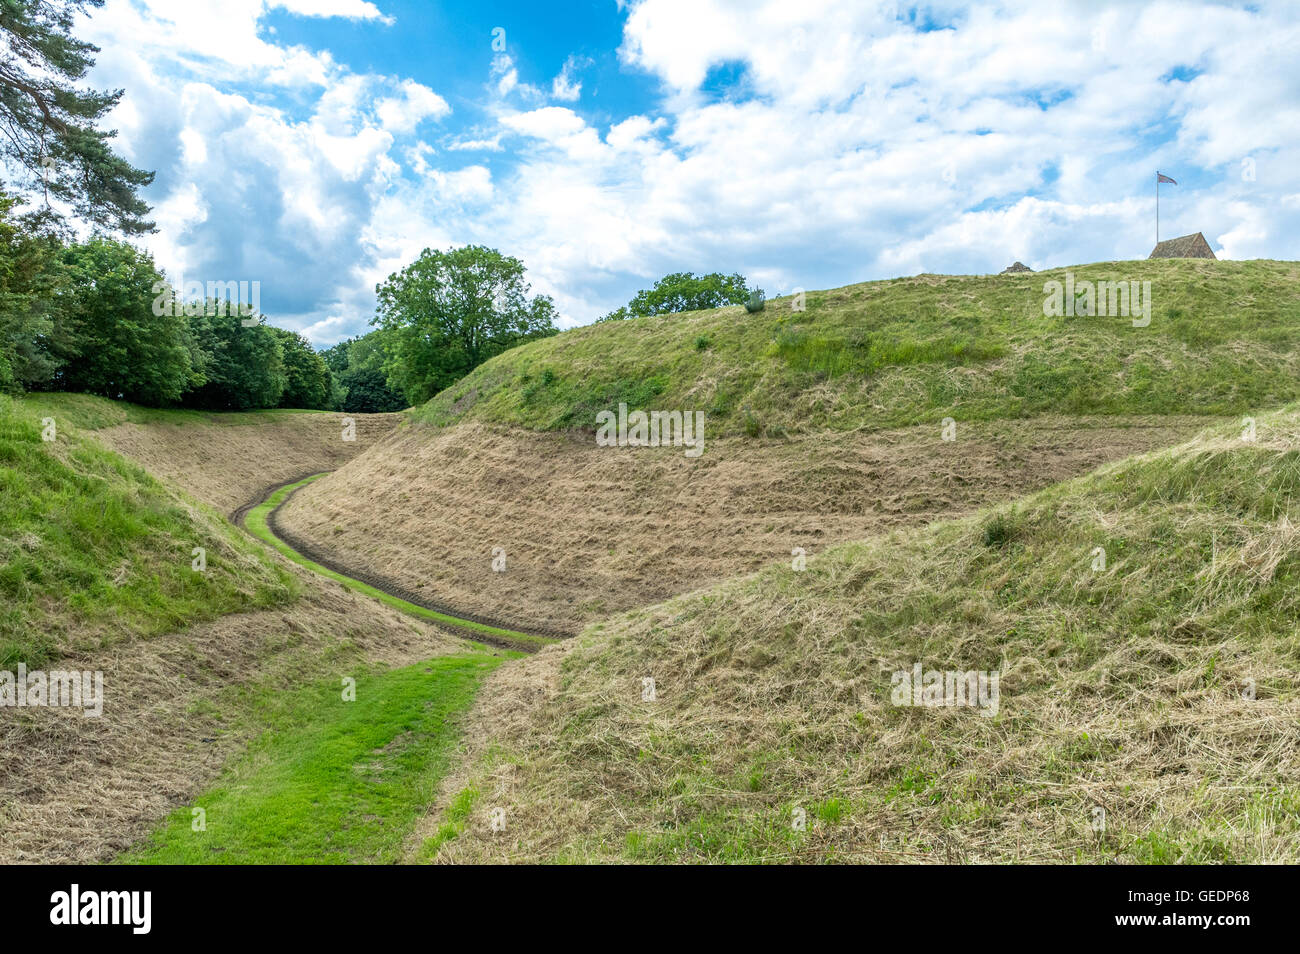 Hand dug moats at Castle Rising, Norfolk, England. - Stock Image